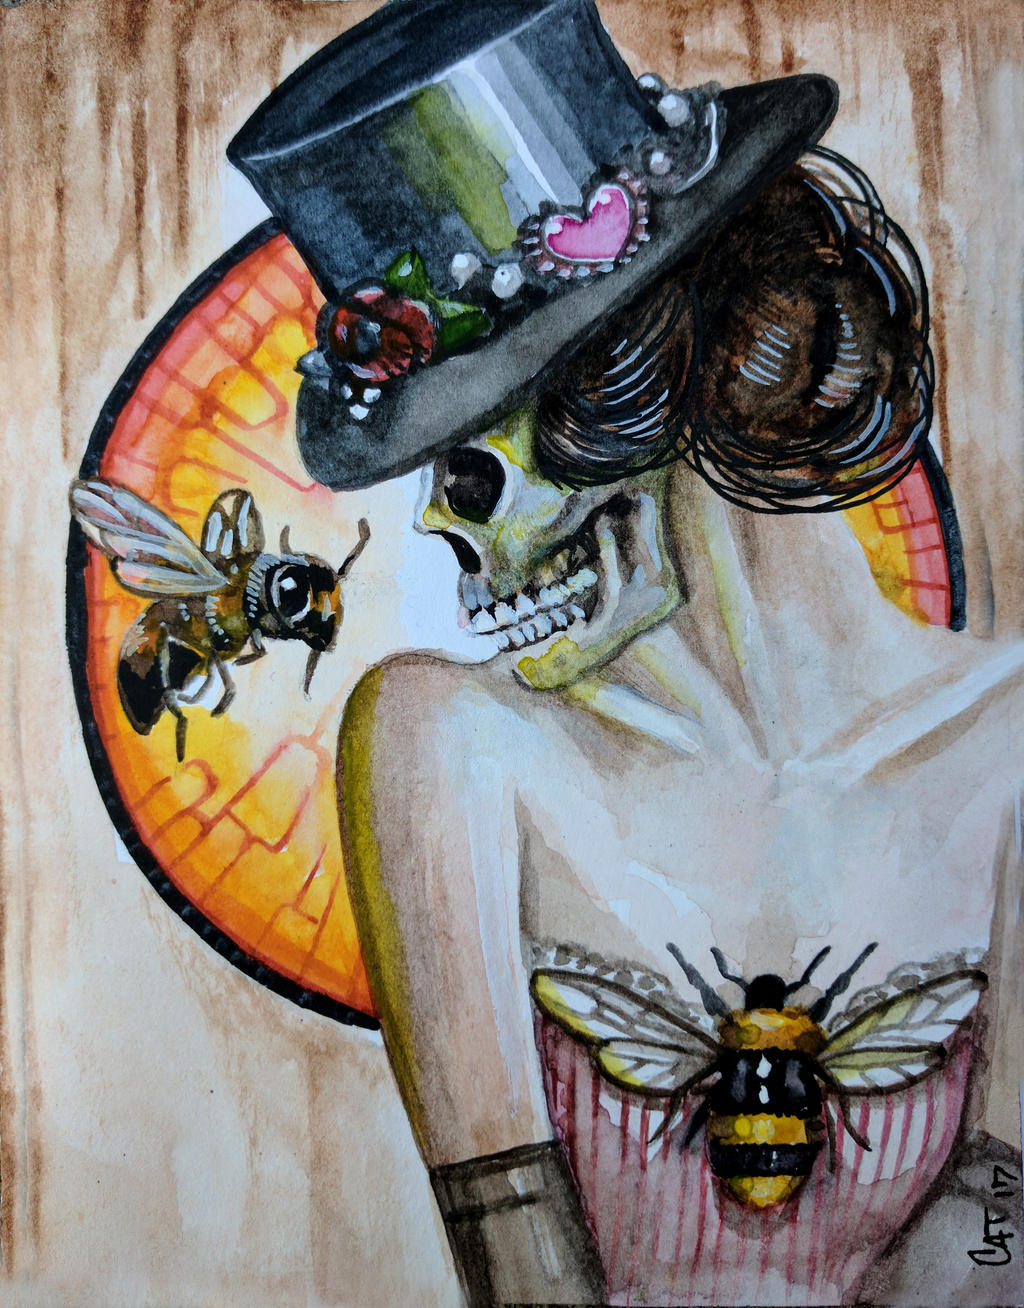 Girl with Bees by catbones